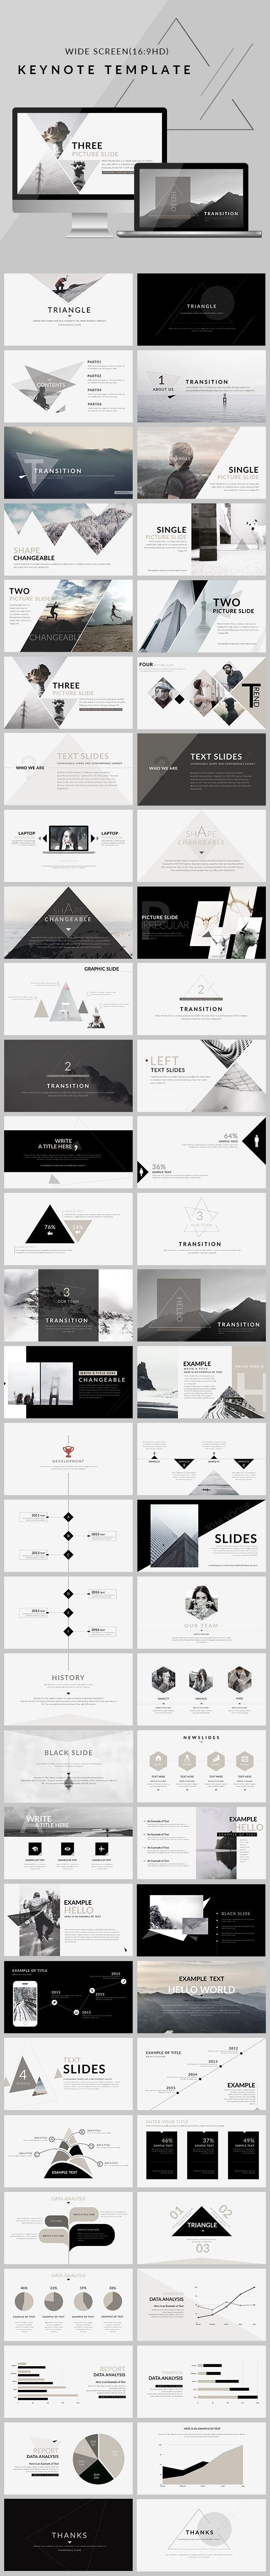 Triangle - Clean trend Keynote Template. Download here: http://graphicriver.net/item/triangle-clean-trend-keynote-template/16272633?ref=ksioks                                                                                                                                                                                 More